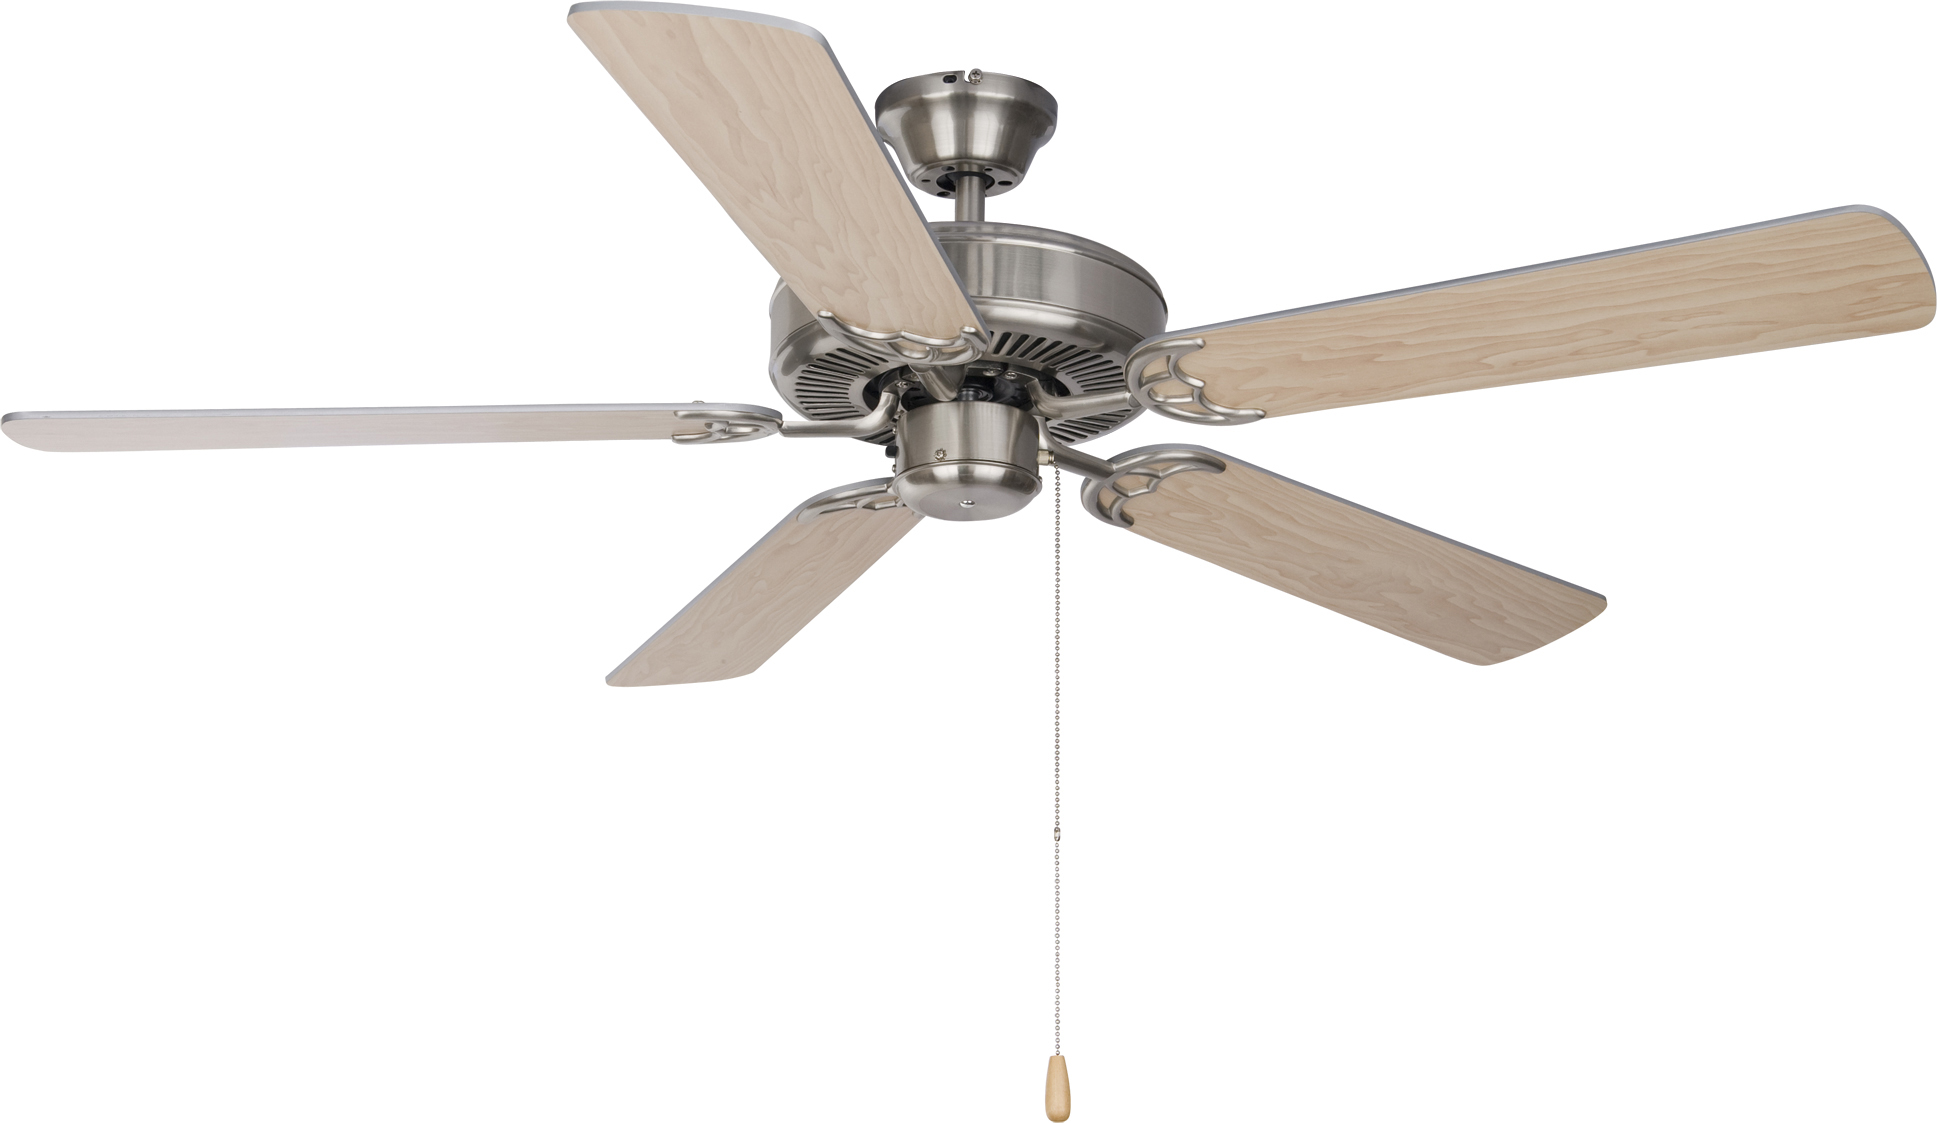 "Basic Max 52"" Ceiling Fan Silver Maple Blades Indoor Ceiling"